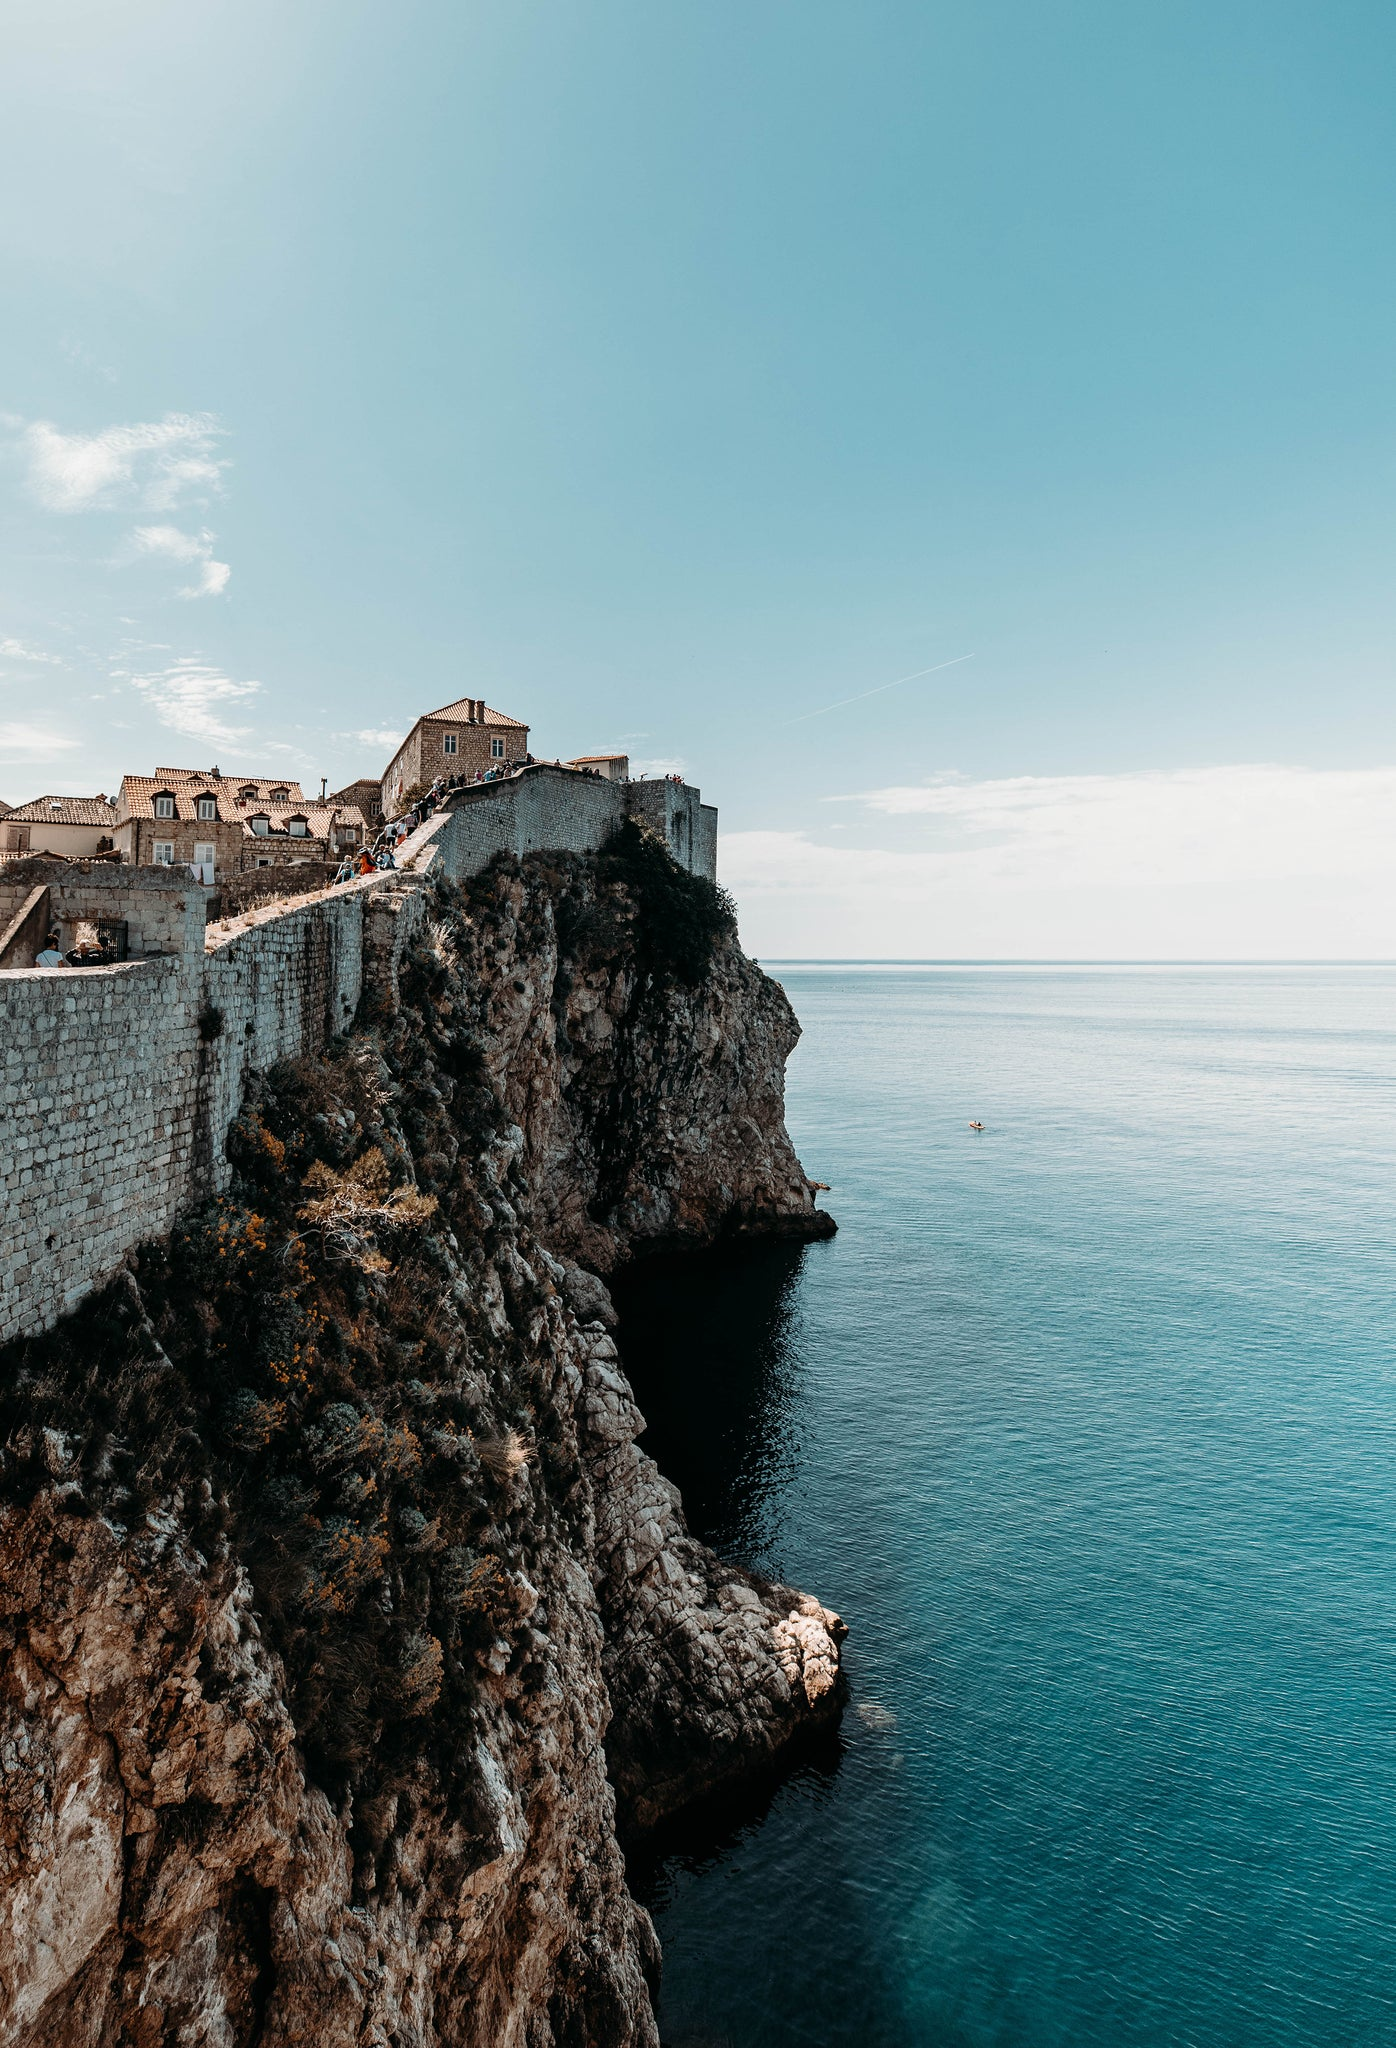 Kings Landing in Dubrovik, Croatia - Citywall